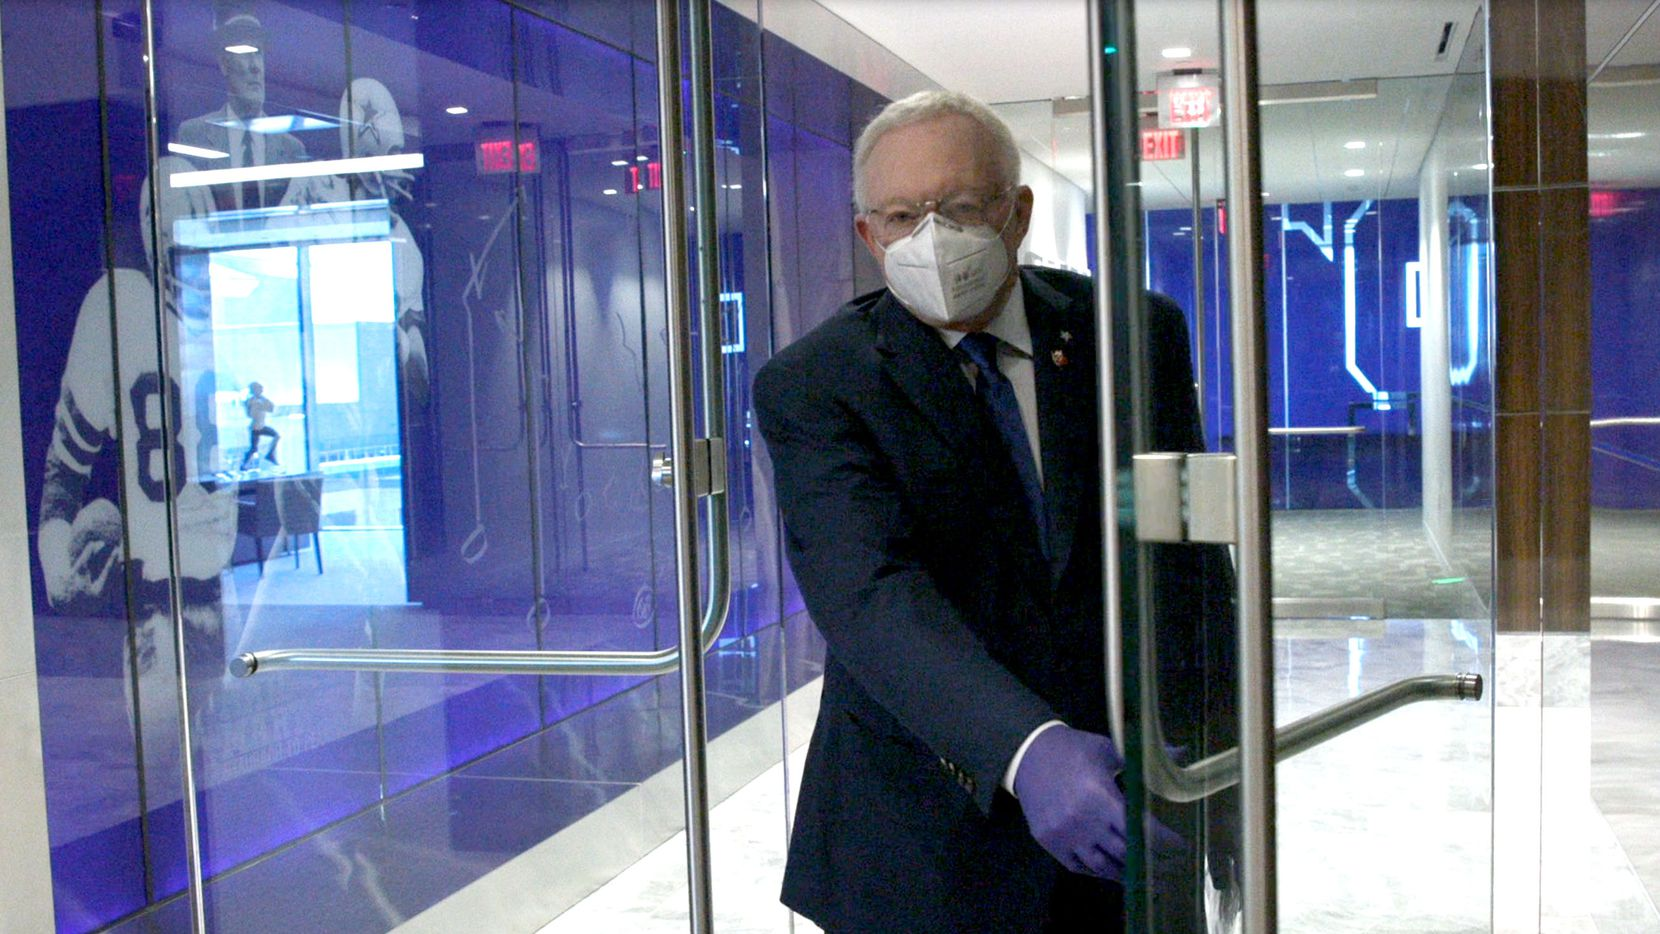 Jerry Jones appears in a video wearing a mask and gloves while being filmed at the Dallas Cowboys headquarters at The Star in Frisco, Texas, on Tuesday, May 19, 2020. Jones participated in the virtual NFL owners meeting via teleconference from The Star in Frisco. According to a statement from Dallas Cowboys spokesperson Rich Dalrymple, Jones and a contingent of Dallas Cowboys employees returned to the team headquarters for work on Tuesday.